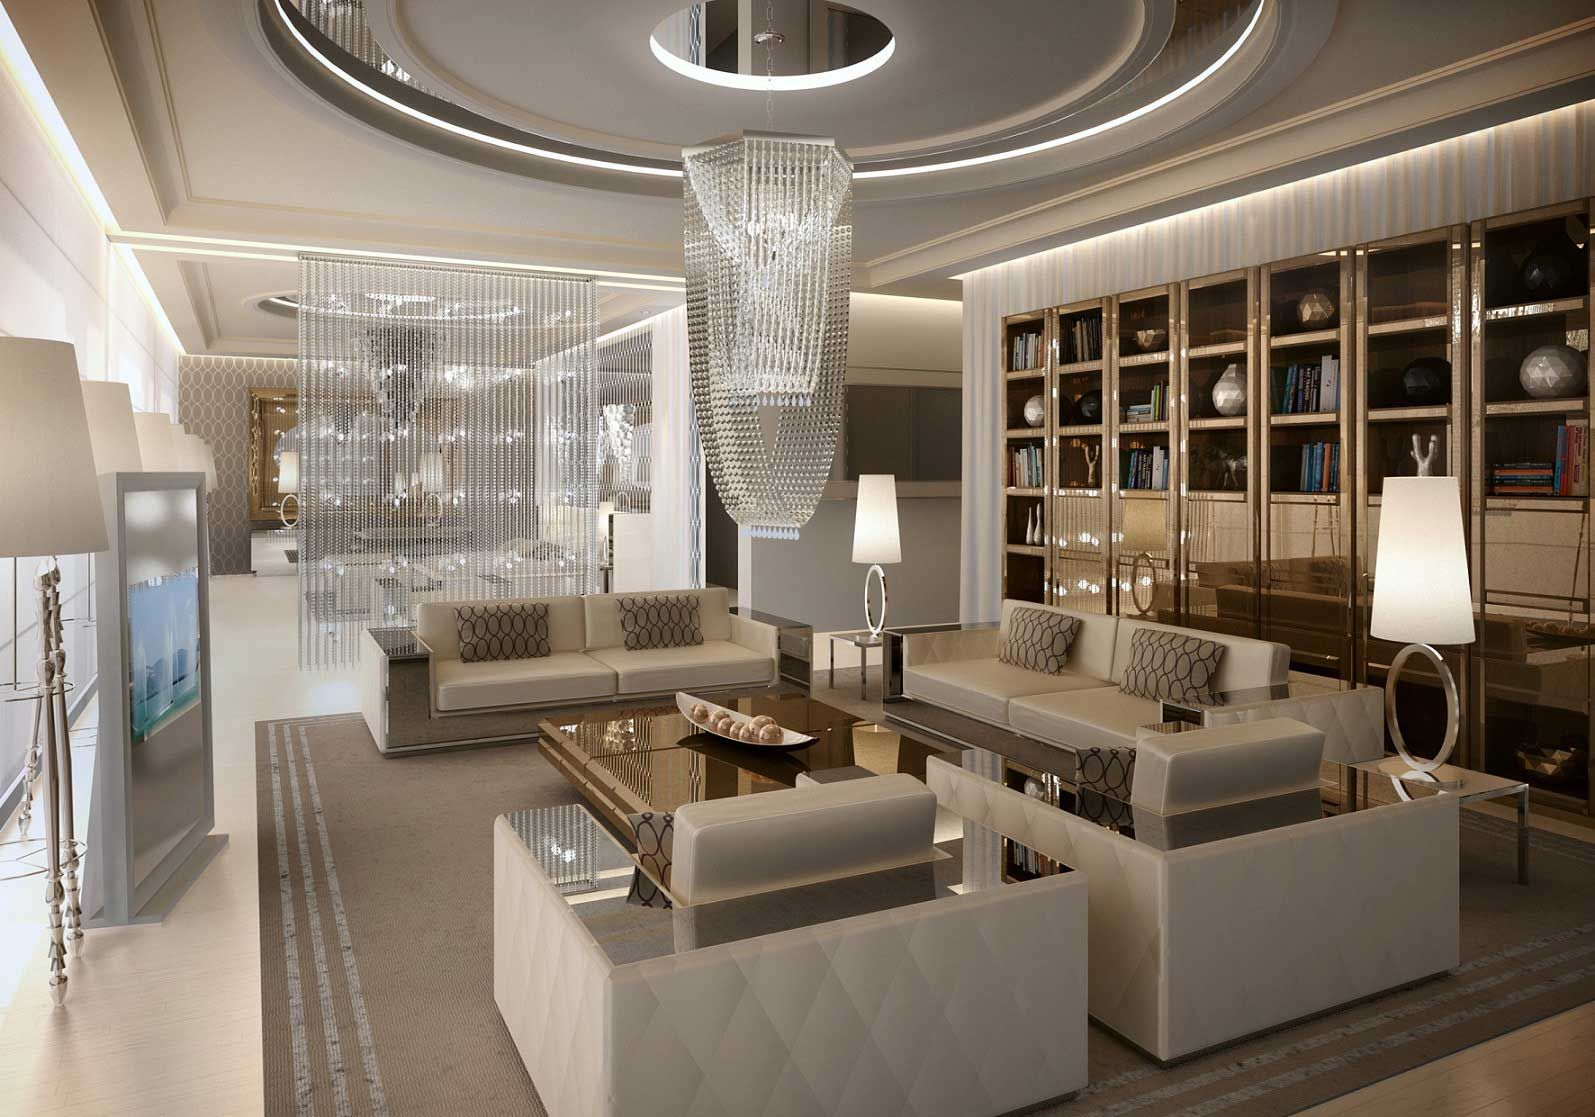 designer luxury homes. Ultra High End Hotel Signature Collection  Designer Furniture Lighting Mirrors Accessories All Available By Special Order Inquiries Custo LorenzoBySujimoto Lifestyle Pinterest Luxury Houses